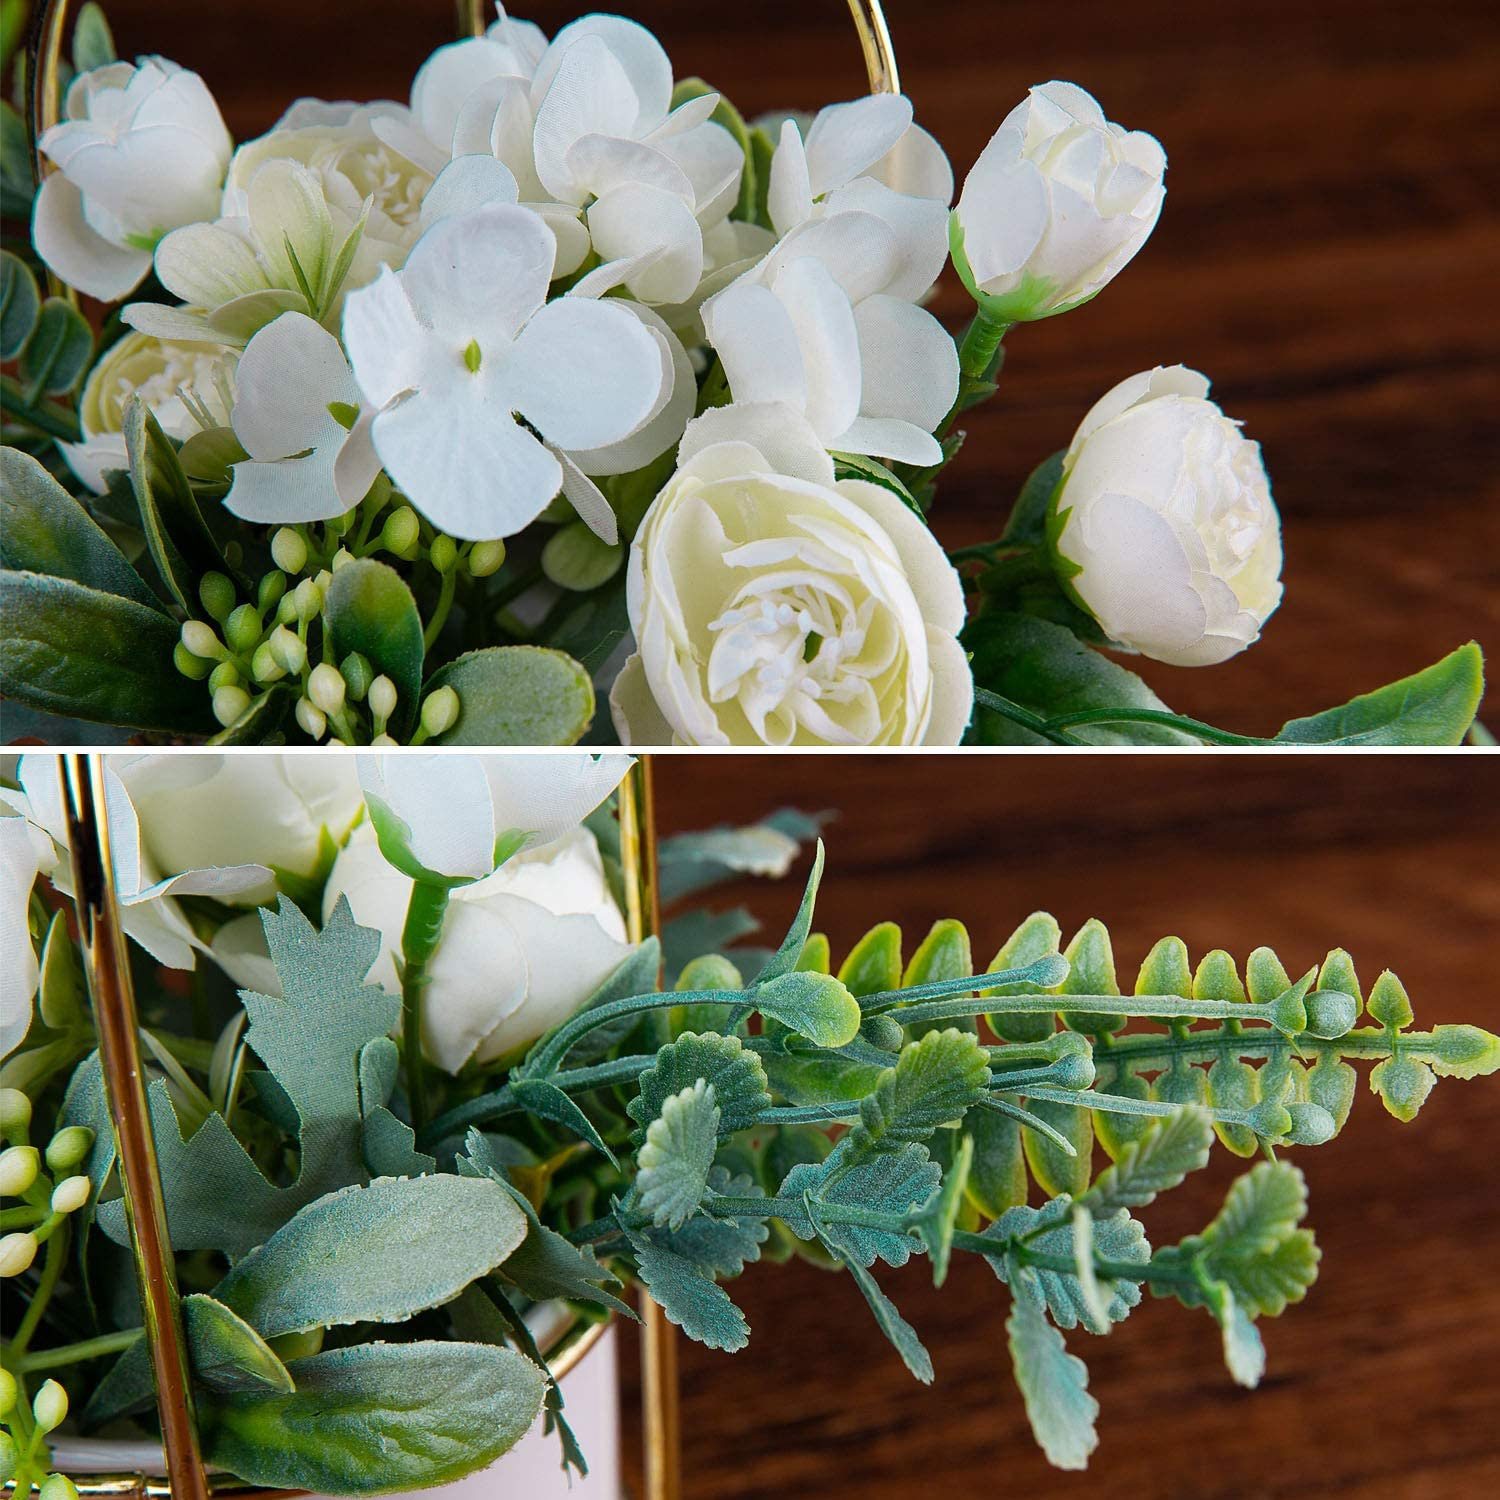 Czemo Artificial Flowers with Vase Included Fake Flowers in Pot Real Touch Silk Flowers Plastic Flowers Bouquet for Home Decoration White